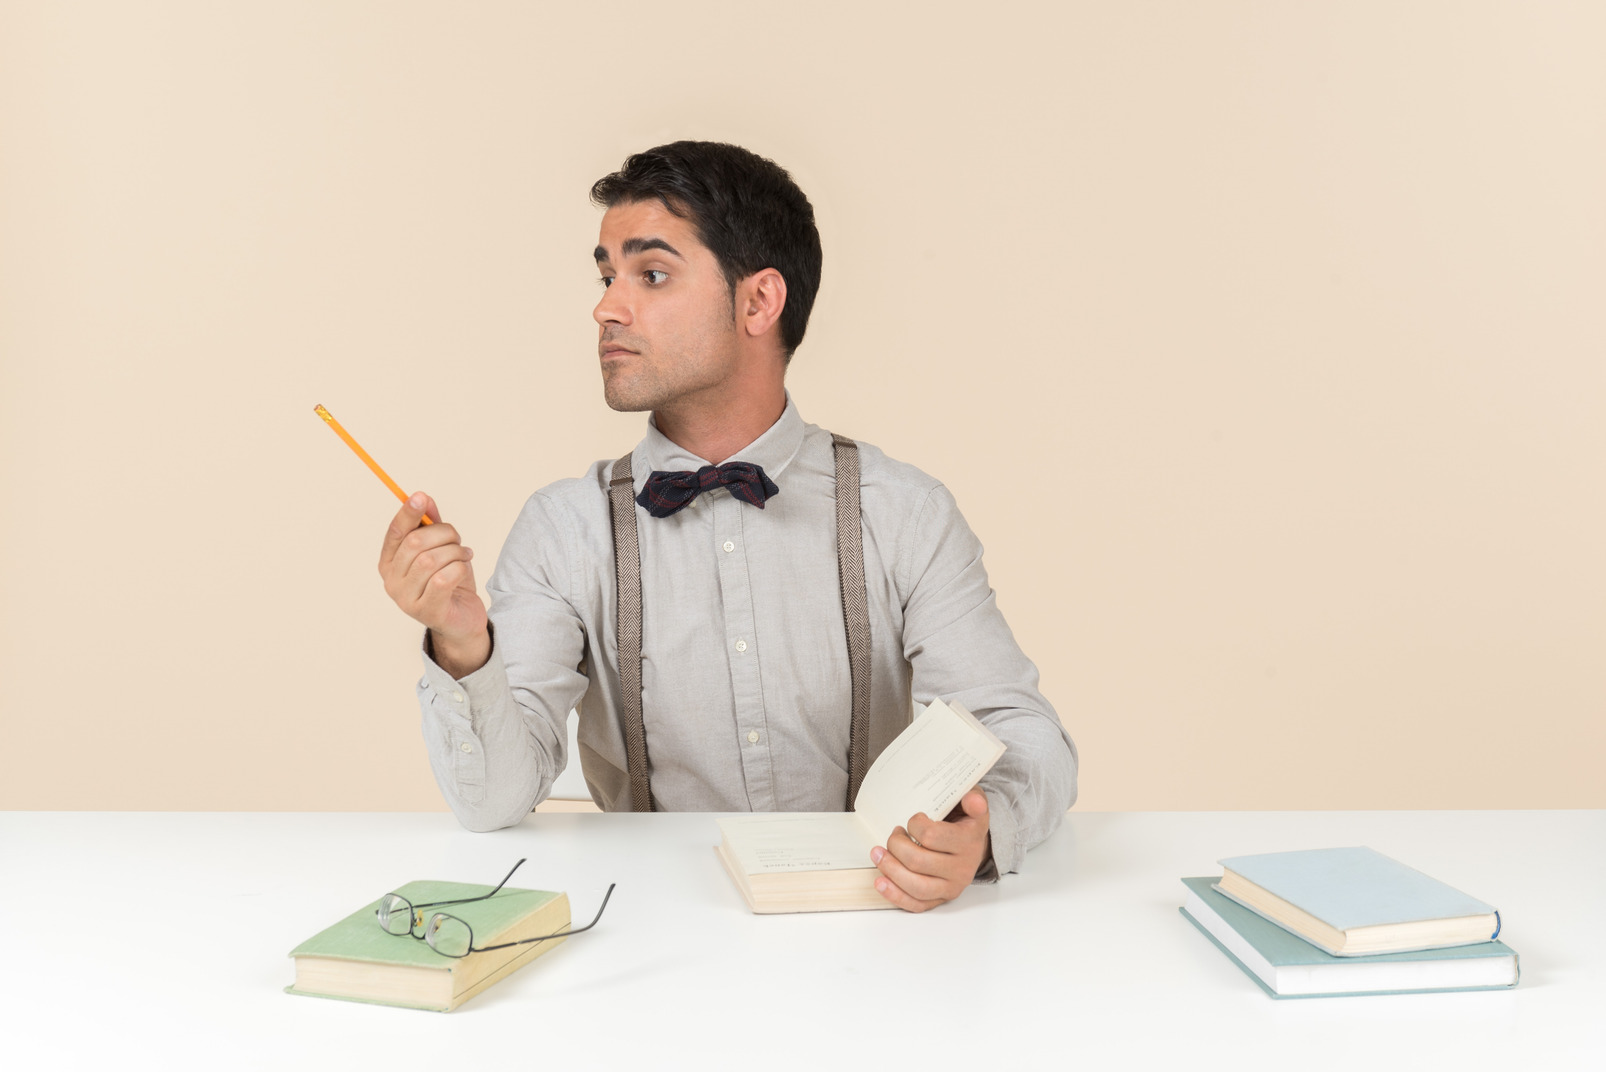 Adult student sitting at the table and pointing aside with a pen